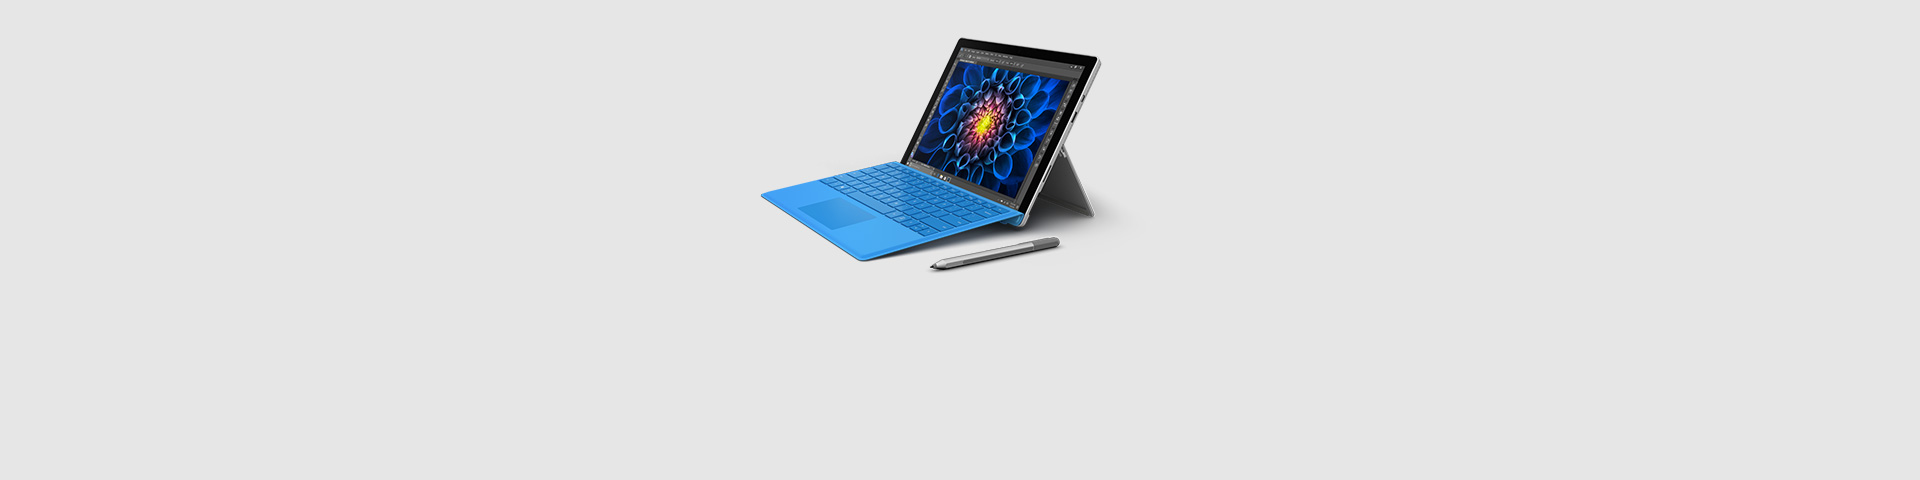 A Surface Pro 4 device